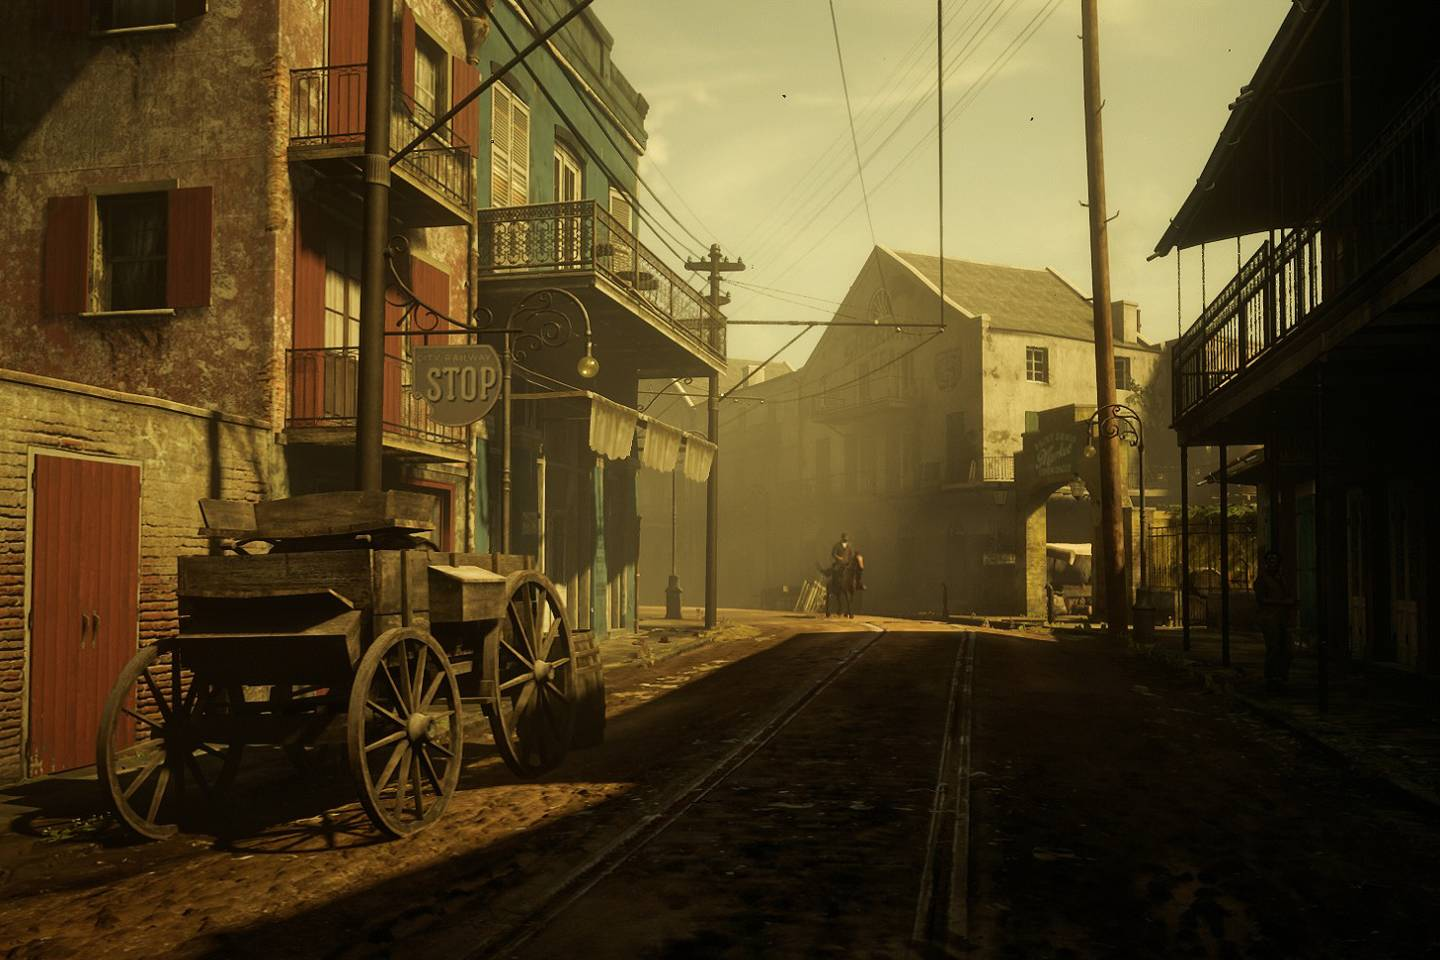 Self-isolating photographers are making Red Dead Redemption 2 art